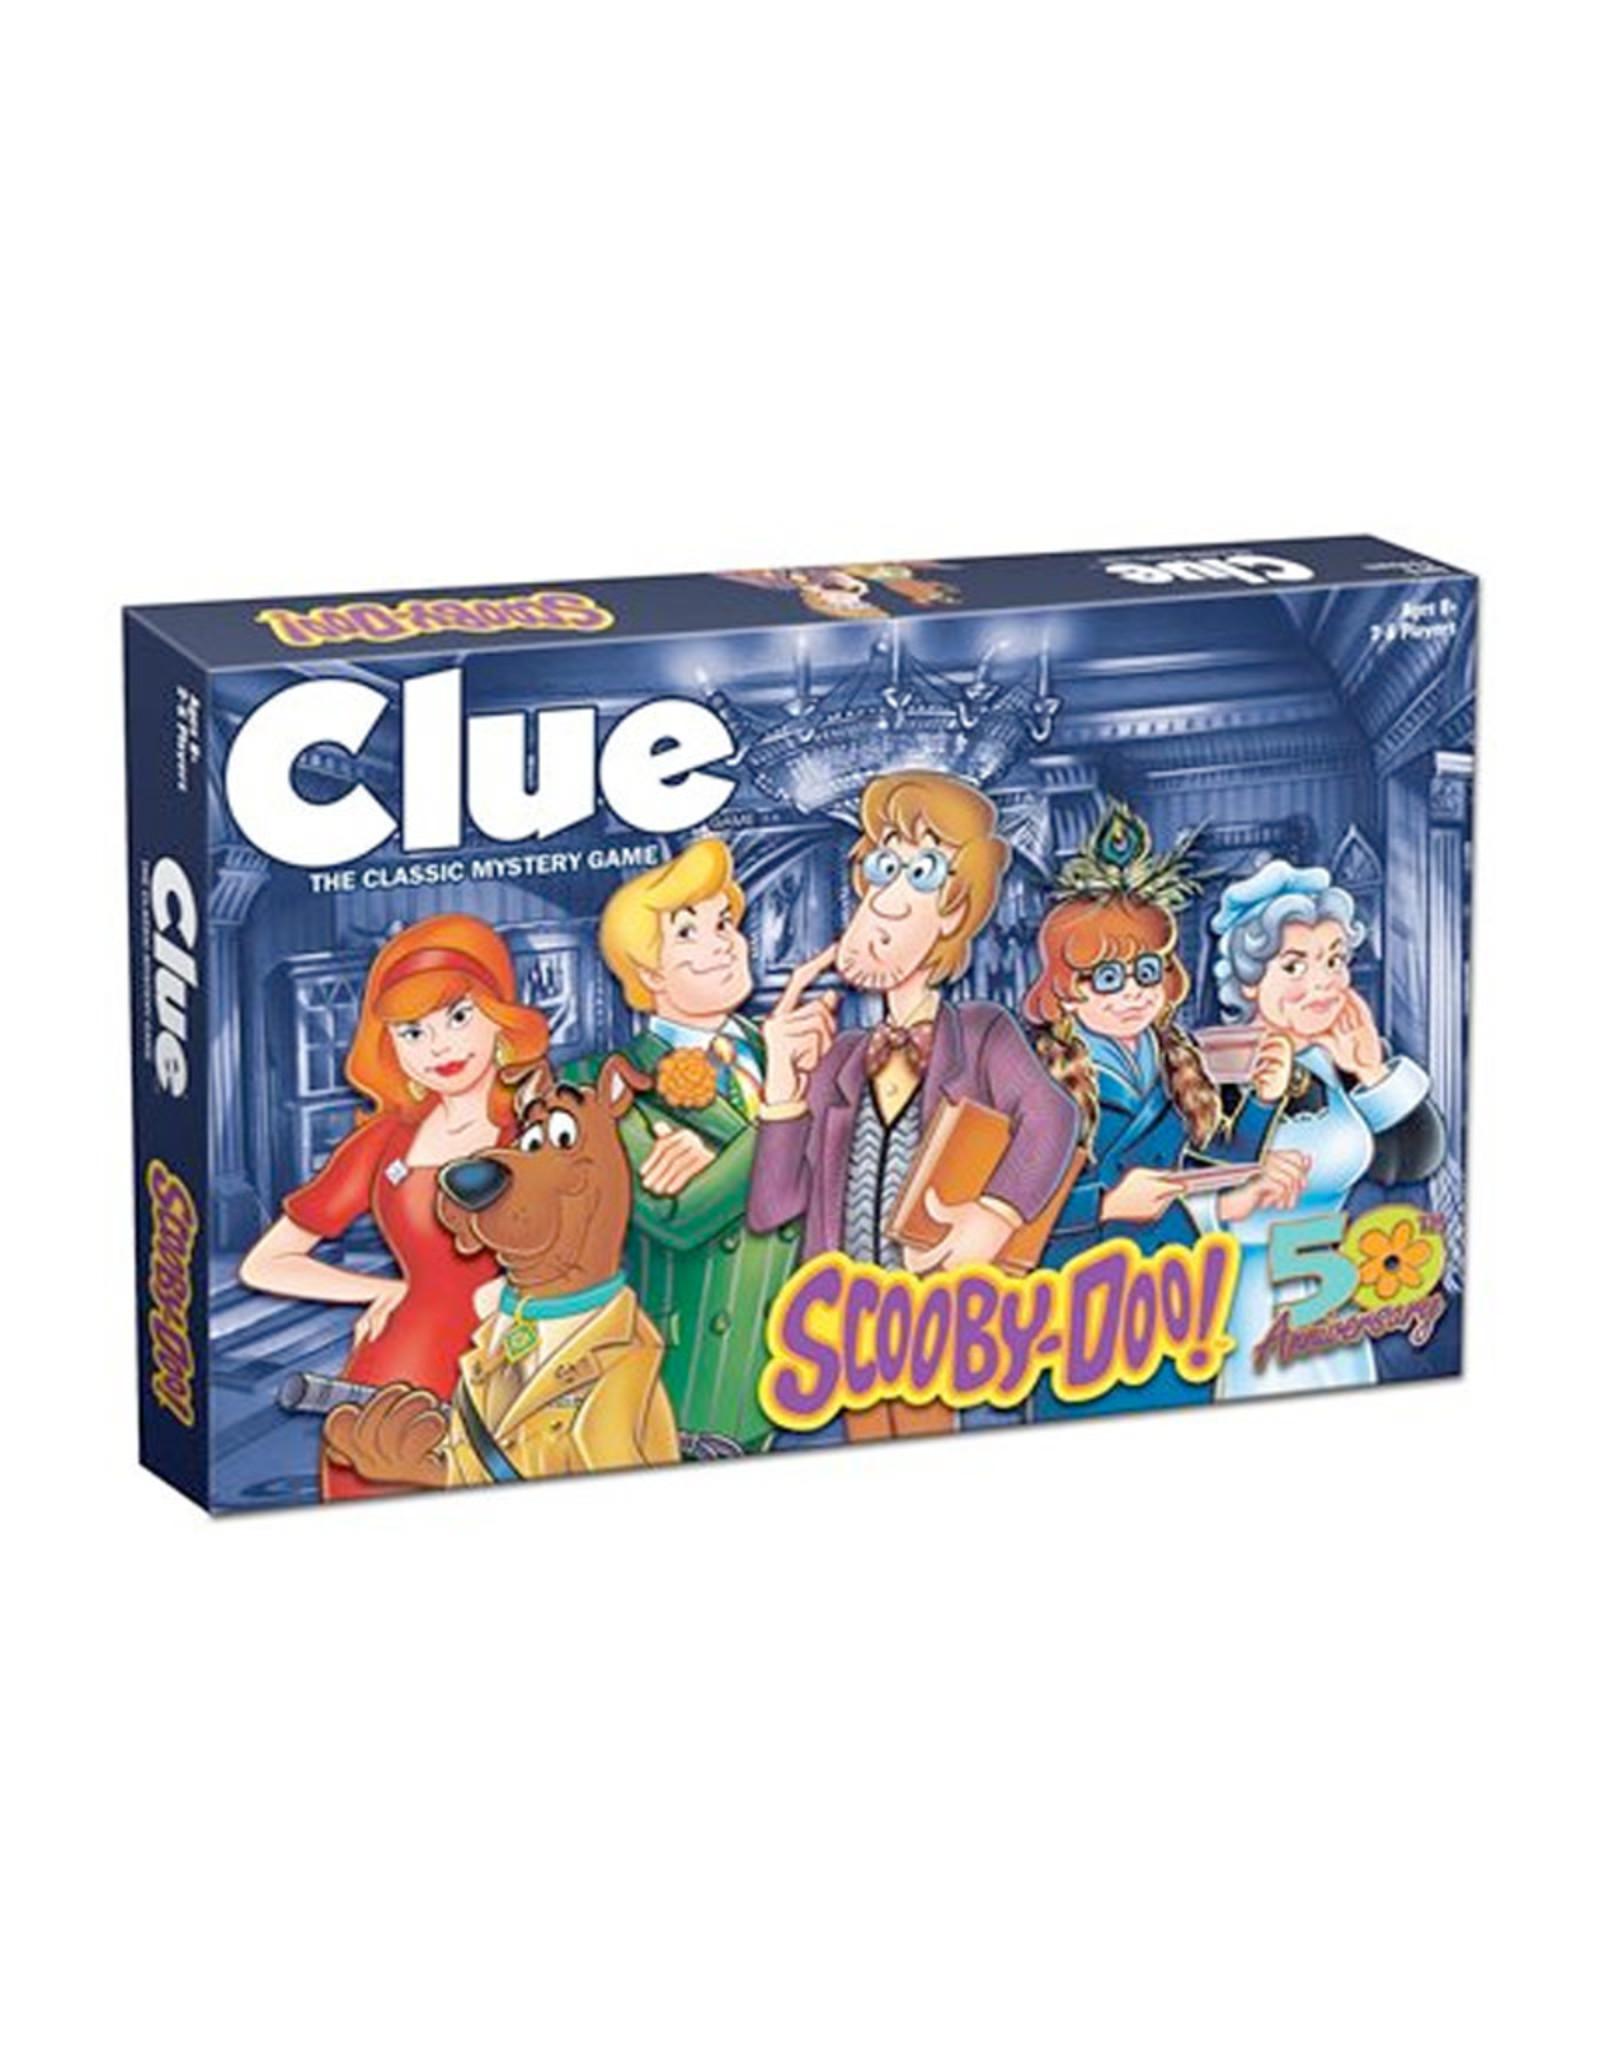 USAopoly Clue Scooby-Doo